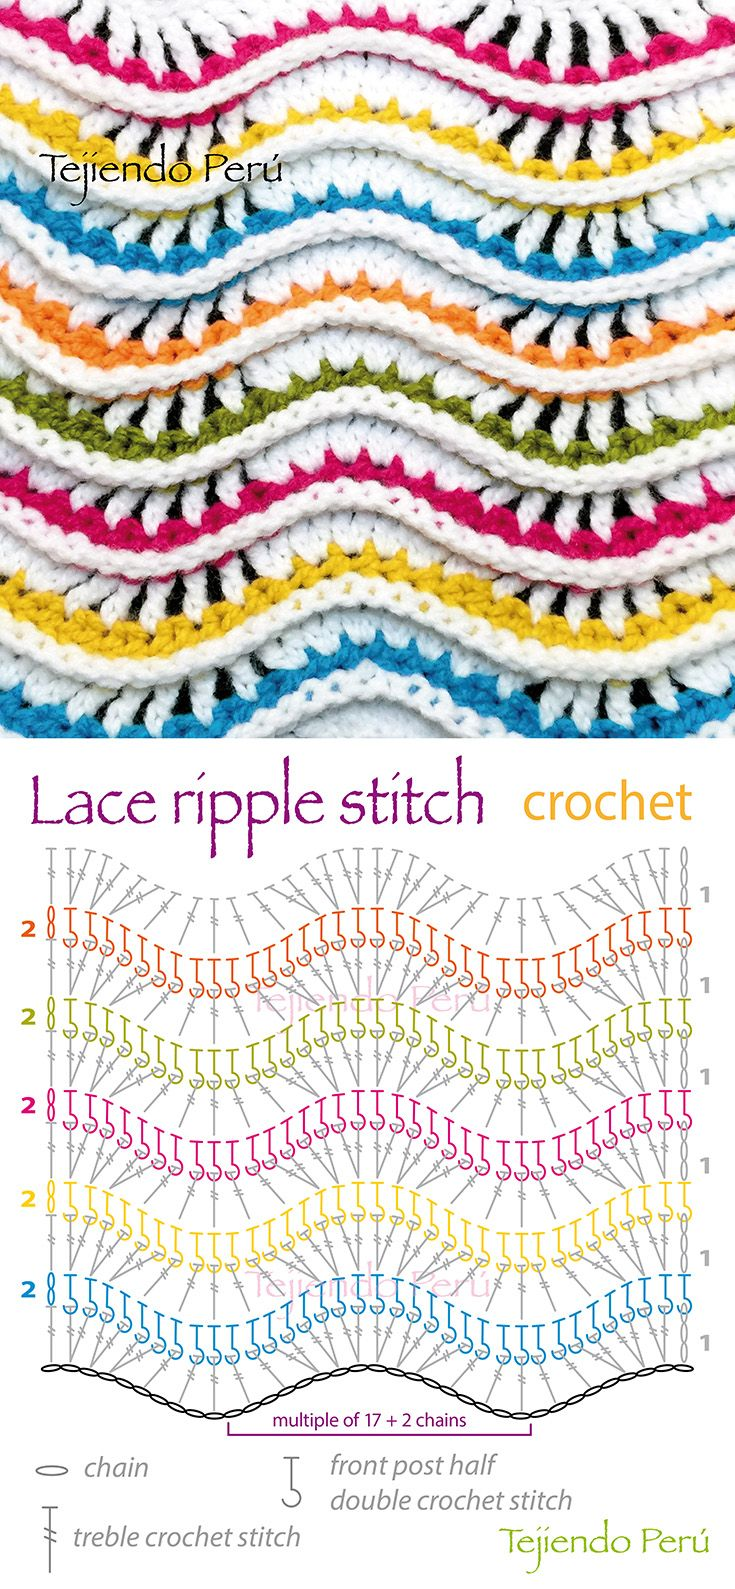 Crochet stitch diagram example electrical wiring diagram crochet lace ripple stitch diagram pattern or chart a lot of rh pinterest co uk crochet stitch diagram drawing program crochet stitch diagrams pdf jackets ccuart